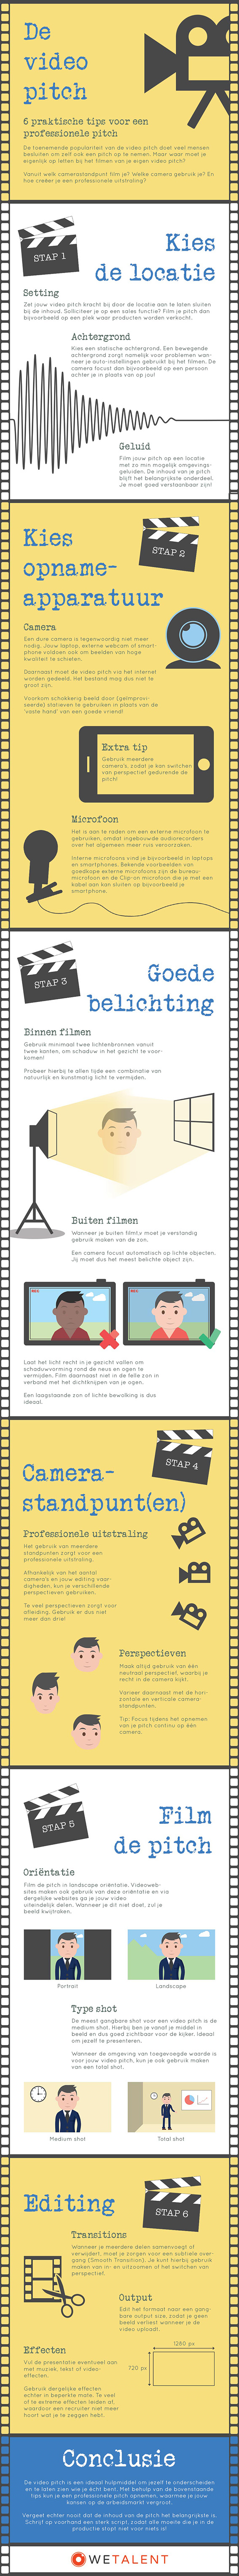 Maak in 6 stappen een professionele video pitch - infographic